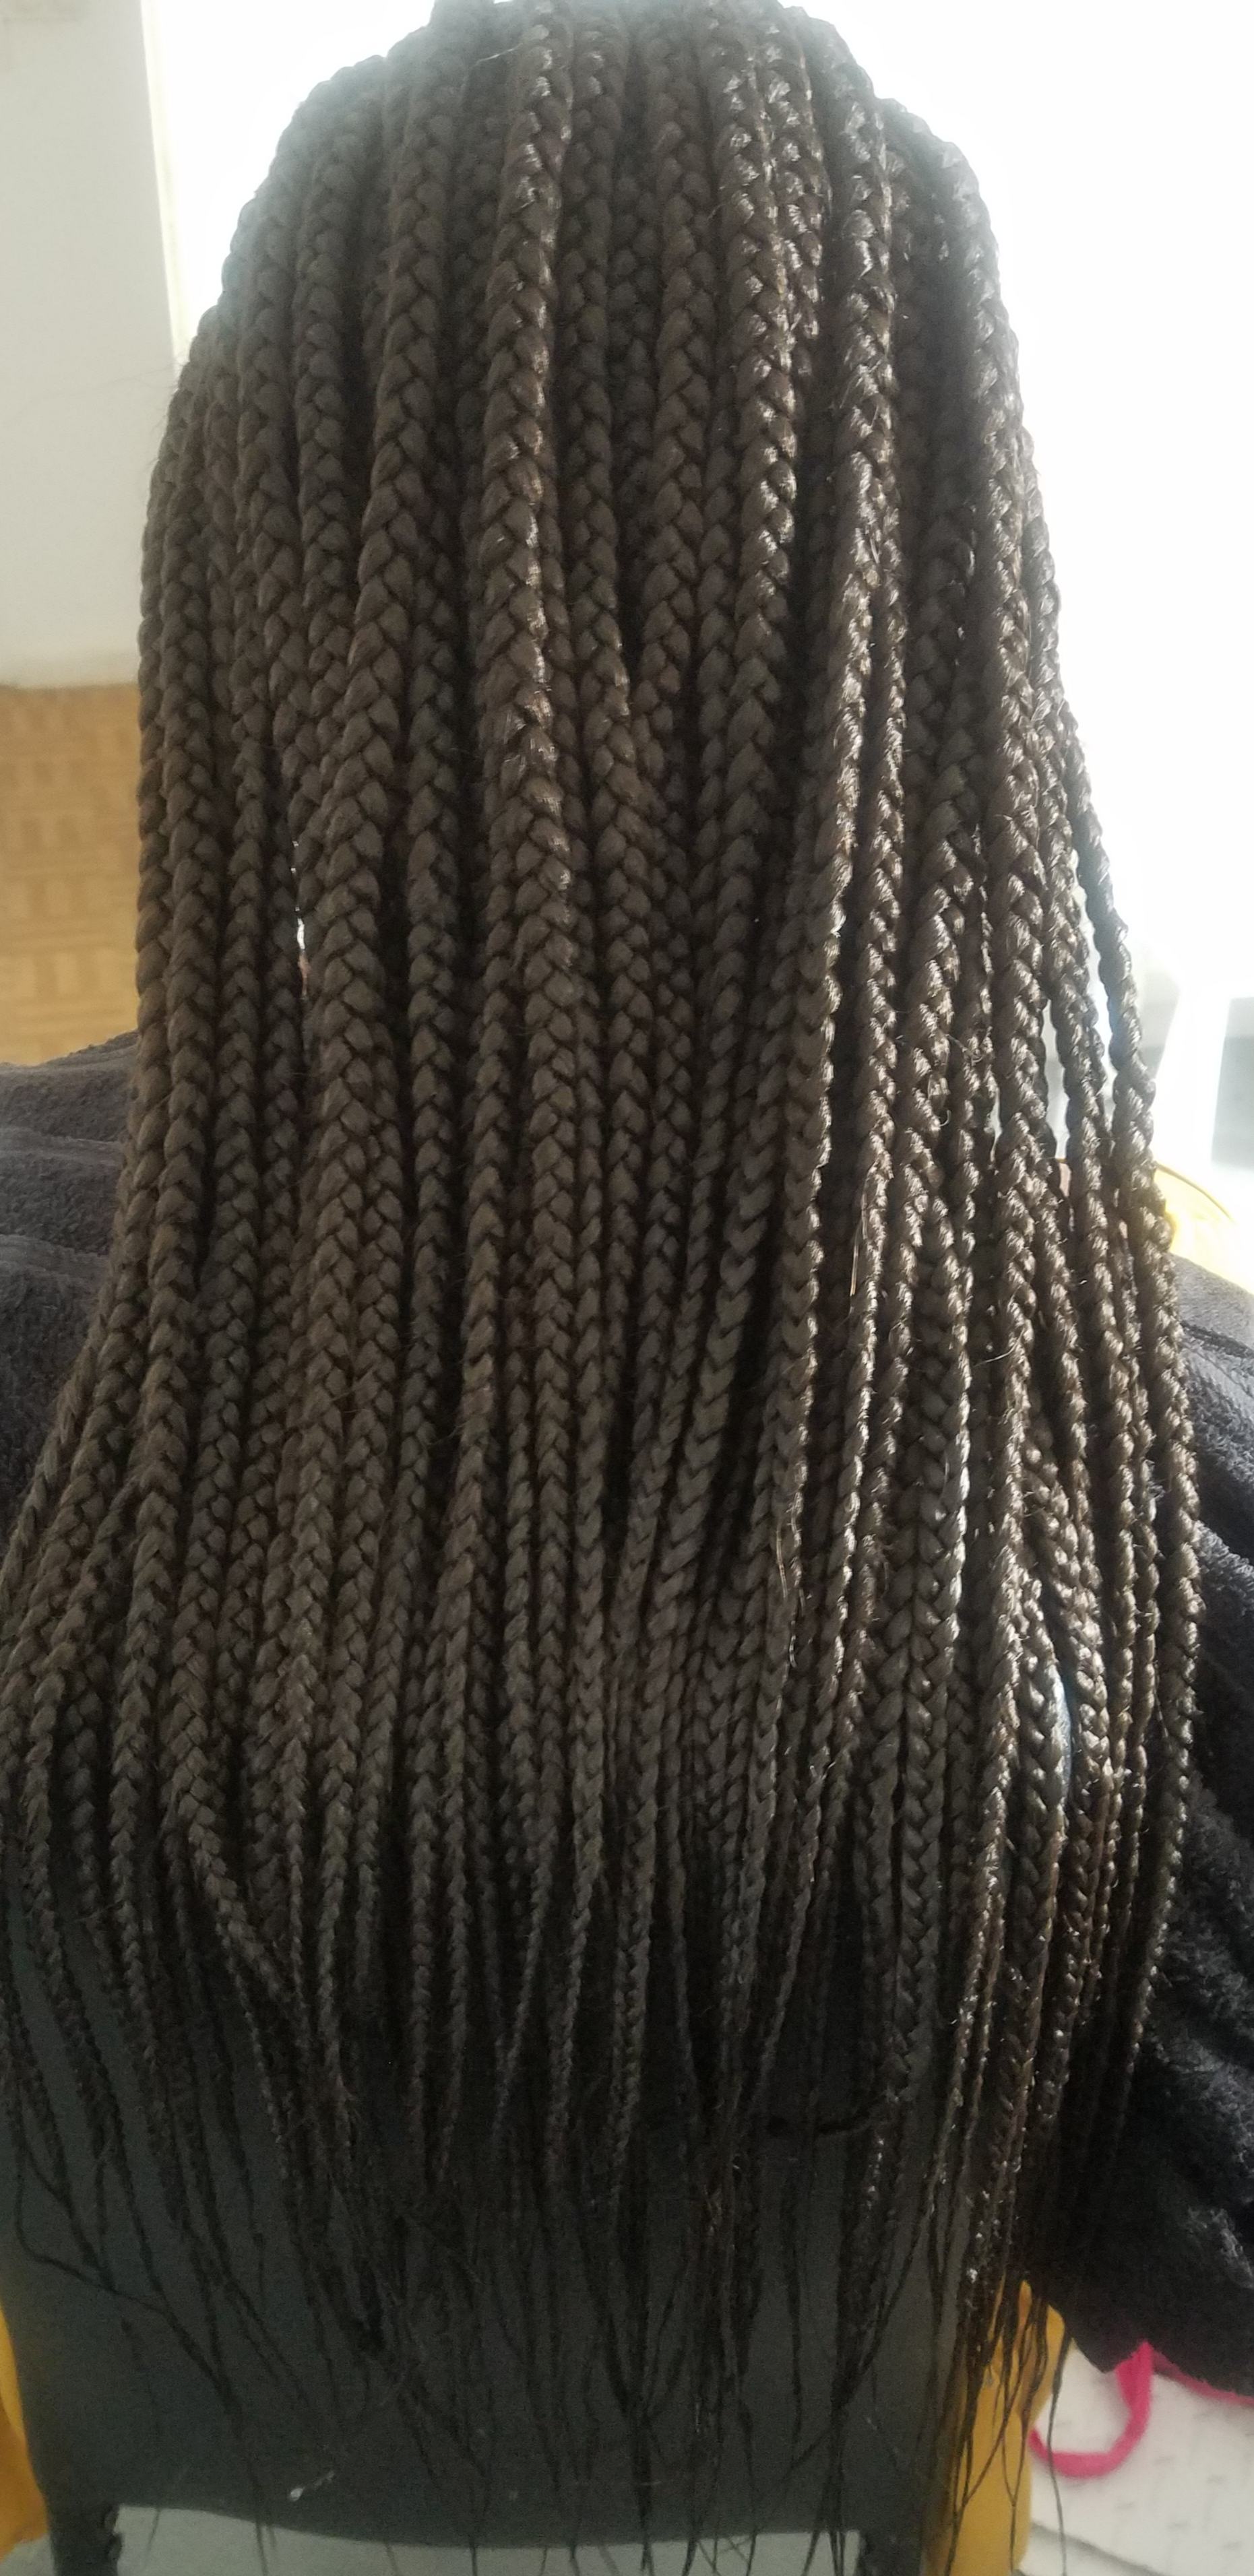 salon de coiffure afro tresse tresses box braids crochet braids vanilles tissages paris 75 77 78 91 92 93 94 95 RPPSMTKP